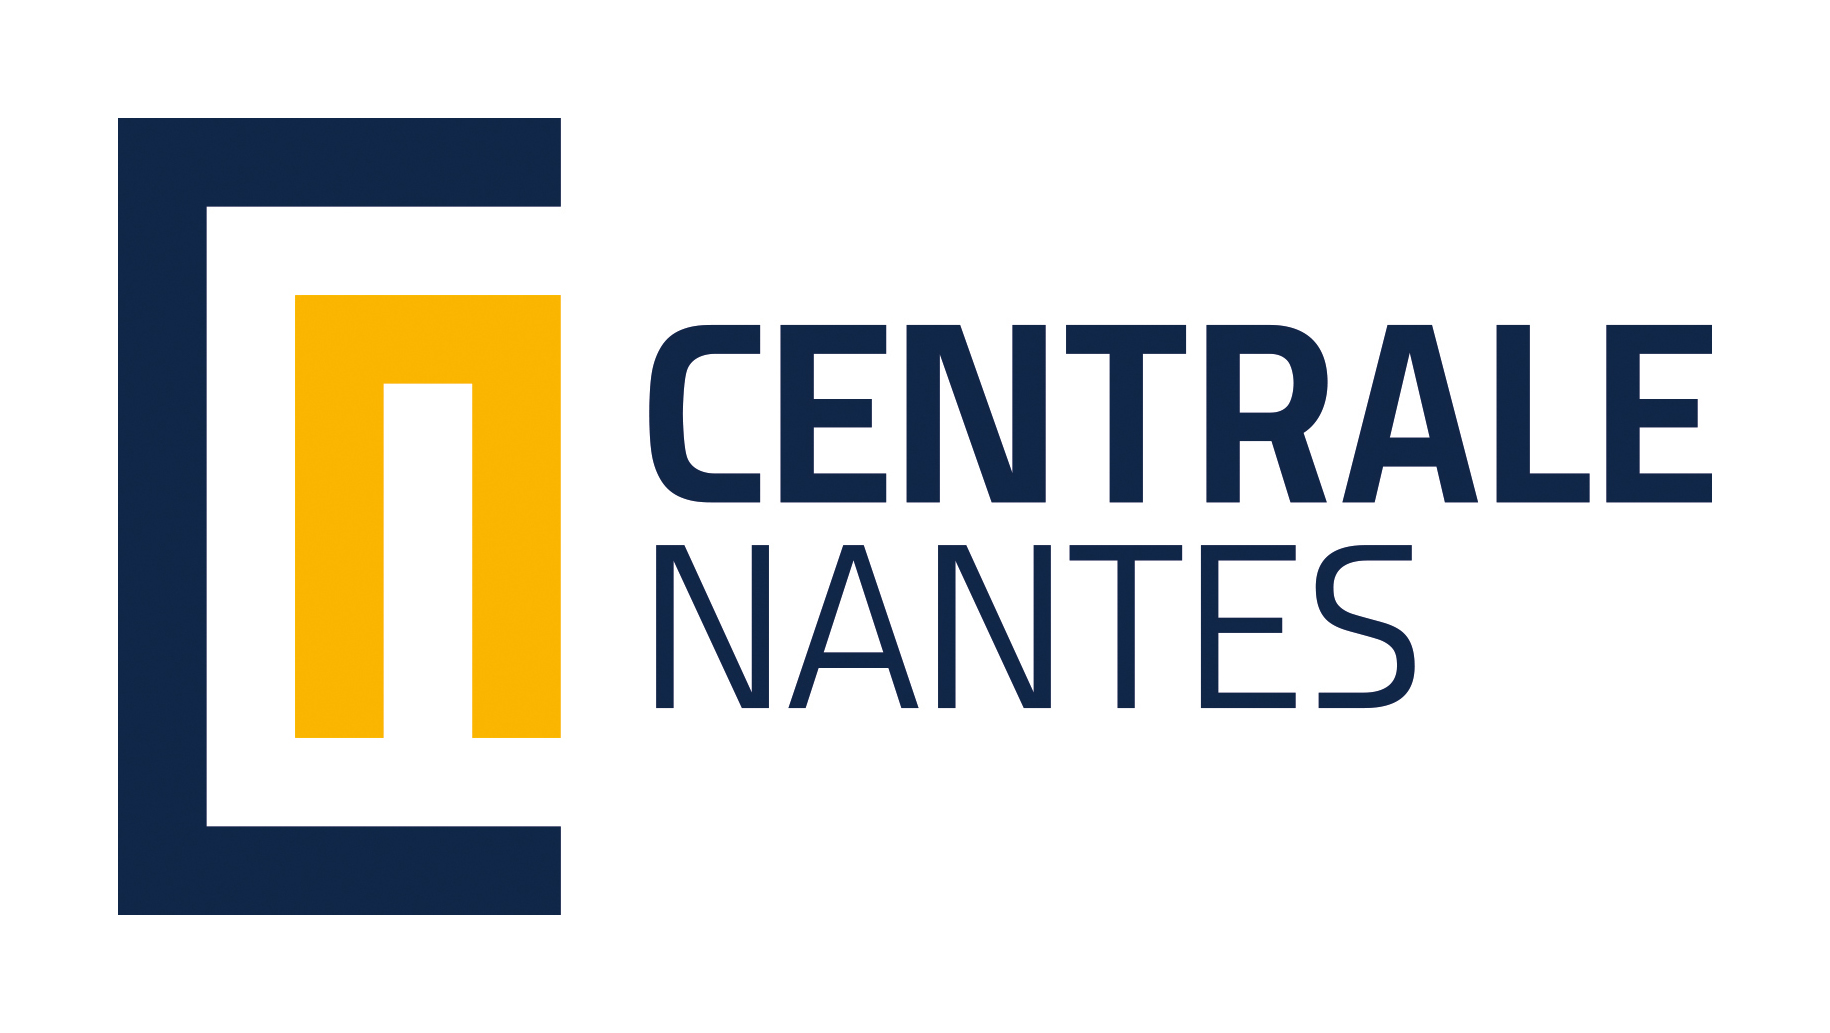 Centrale Nantes